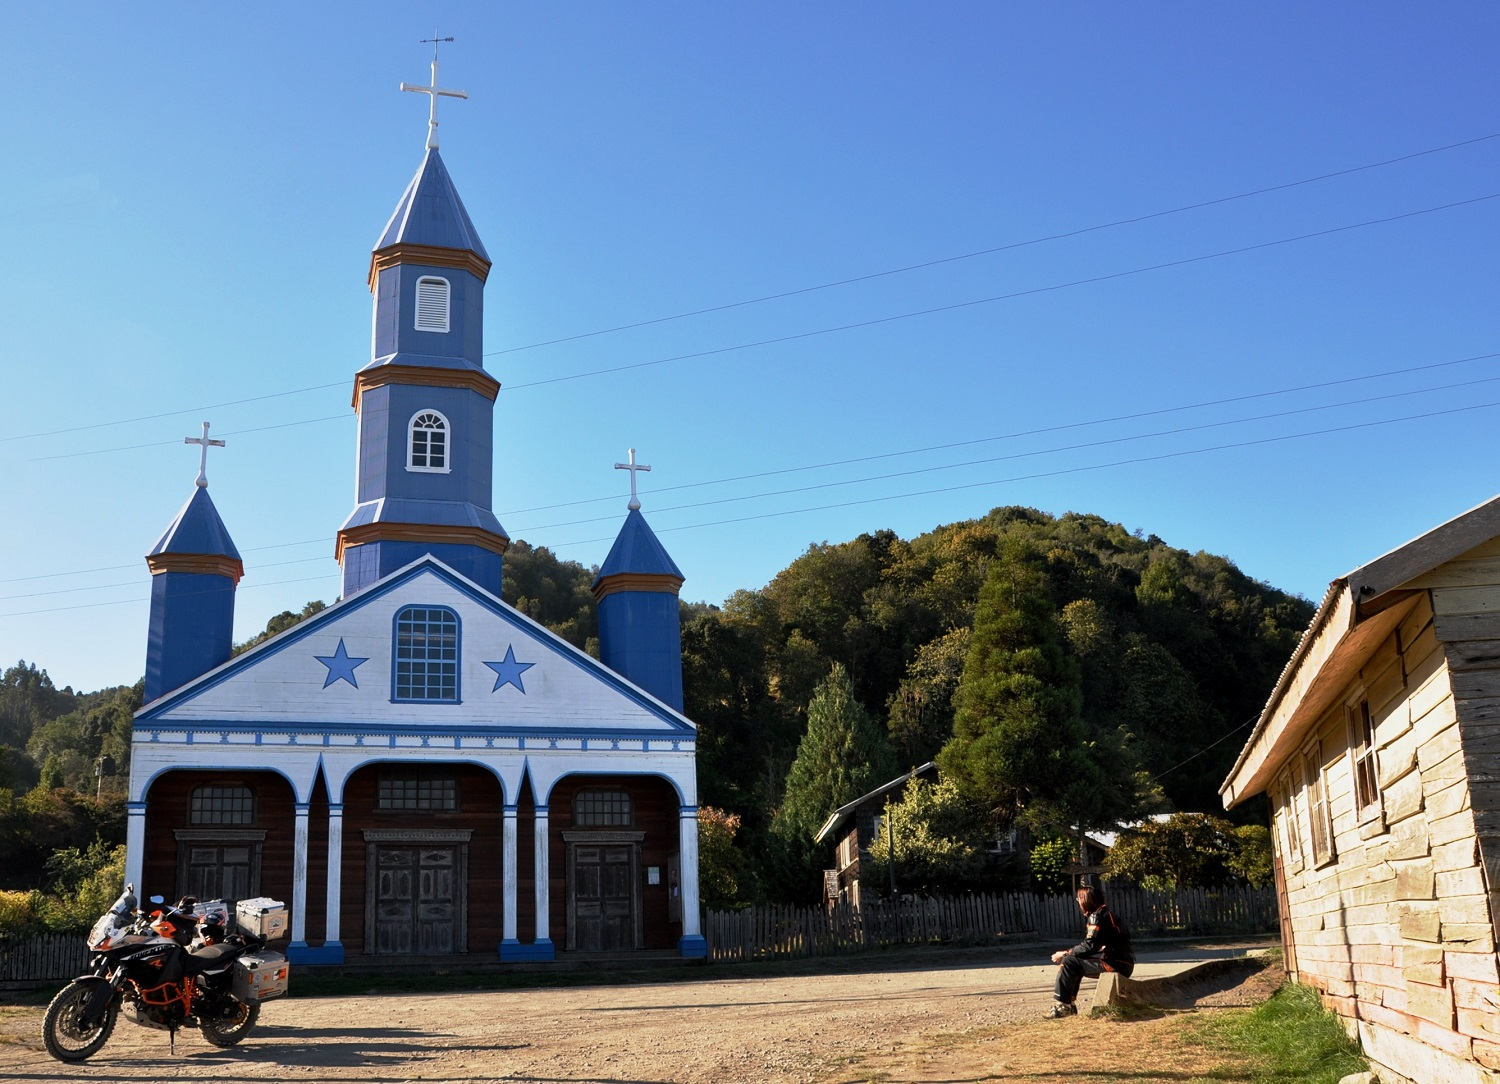 Bunte Holzkirchen sind das Wahrzeichen der Pazifikinsel Chiloé | Colorful wooden churches are the emblems of the Pacific island of Chiloé